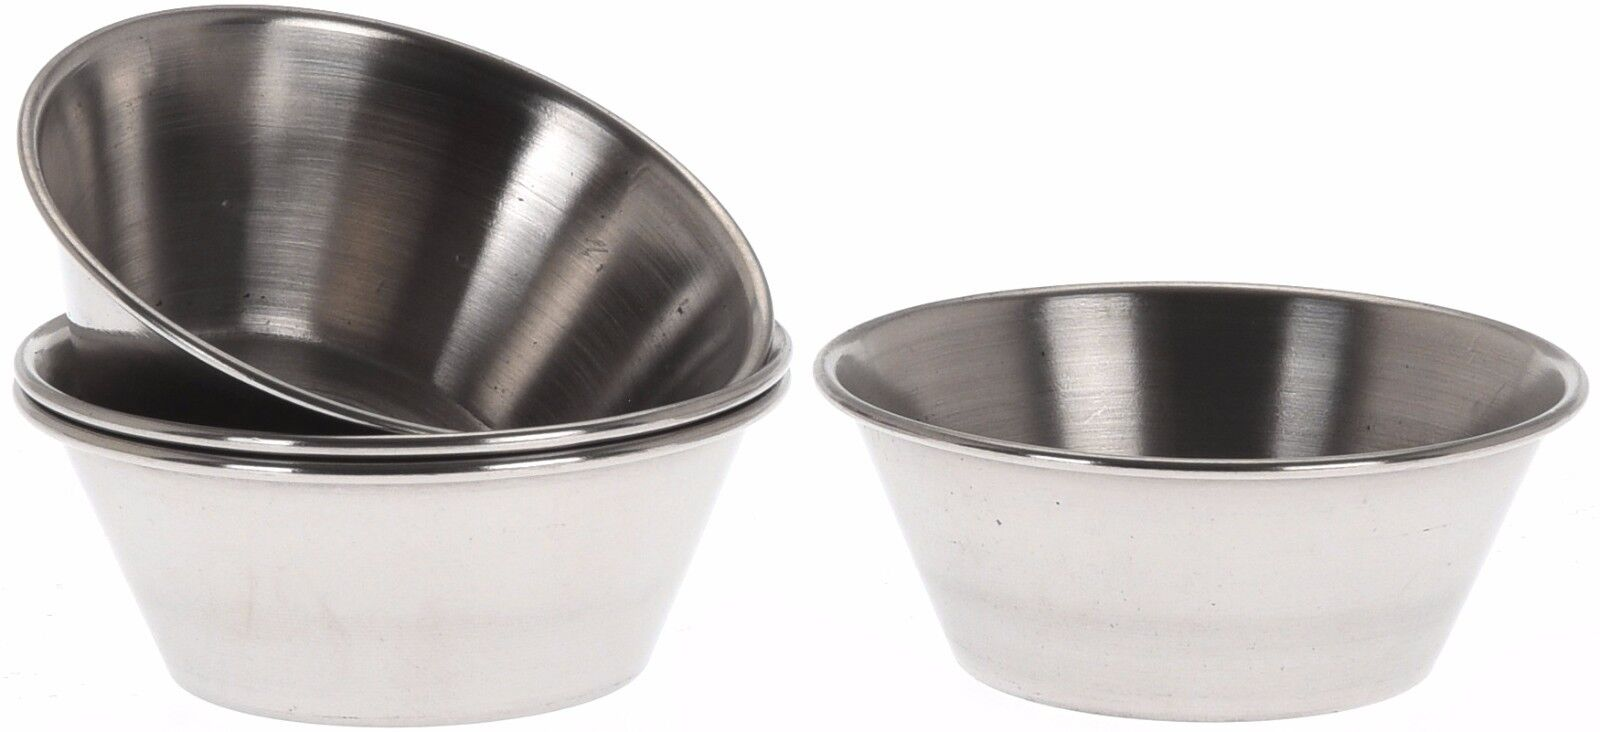 Stainless Steel Ketchup Serving Dishes Mustard Sauce Pots Dipping Sauce Buffet